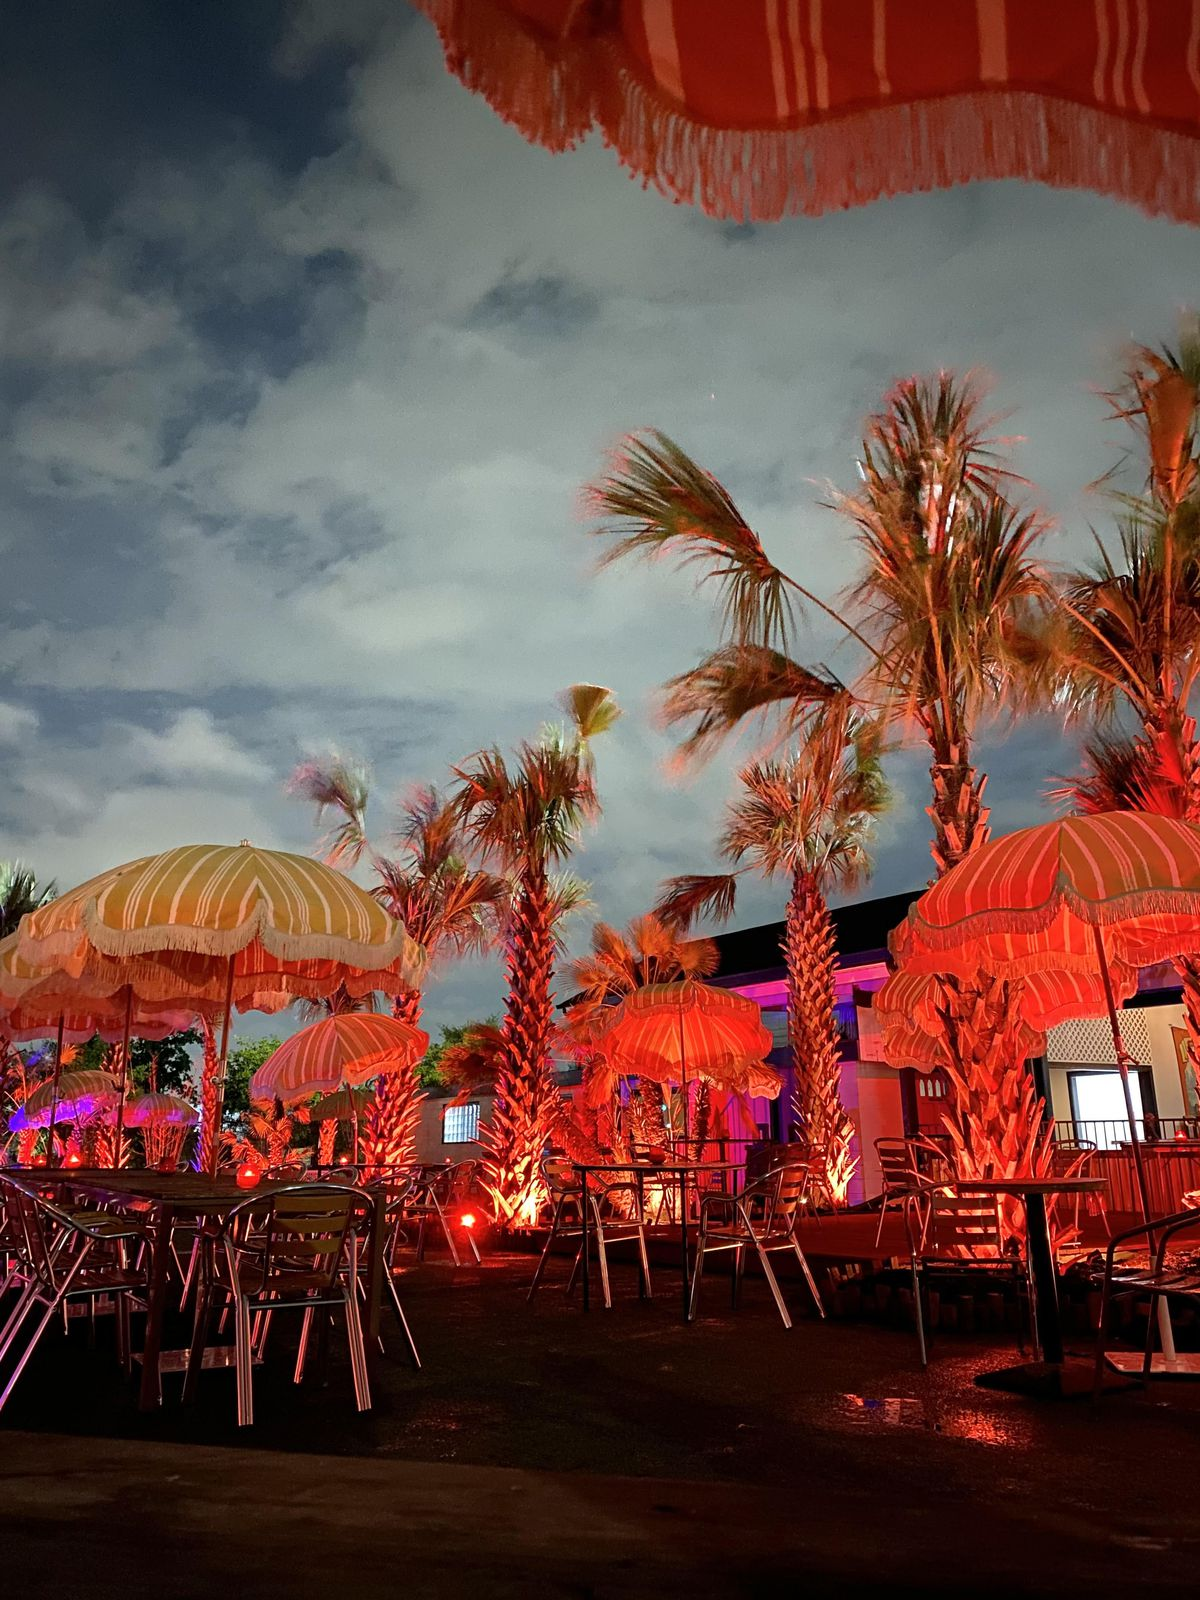 a patio with palm trees and fringed umbrellas